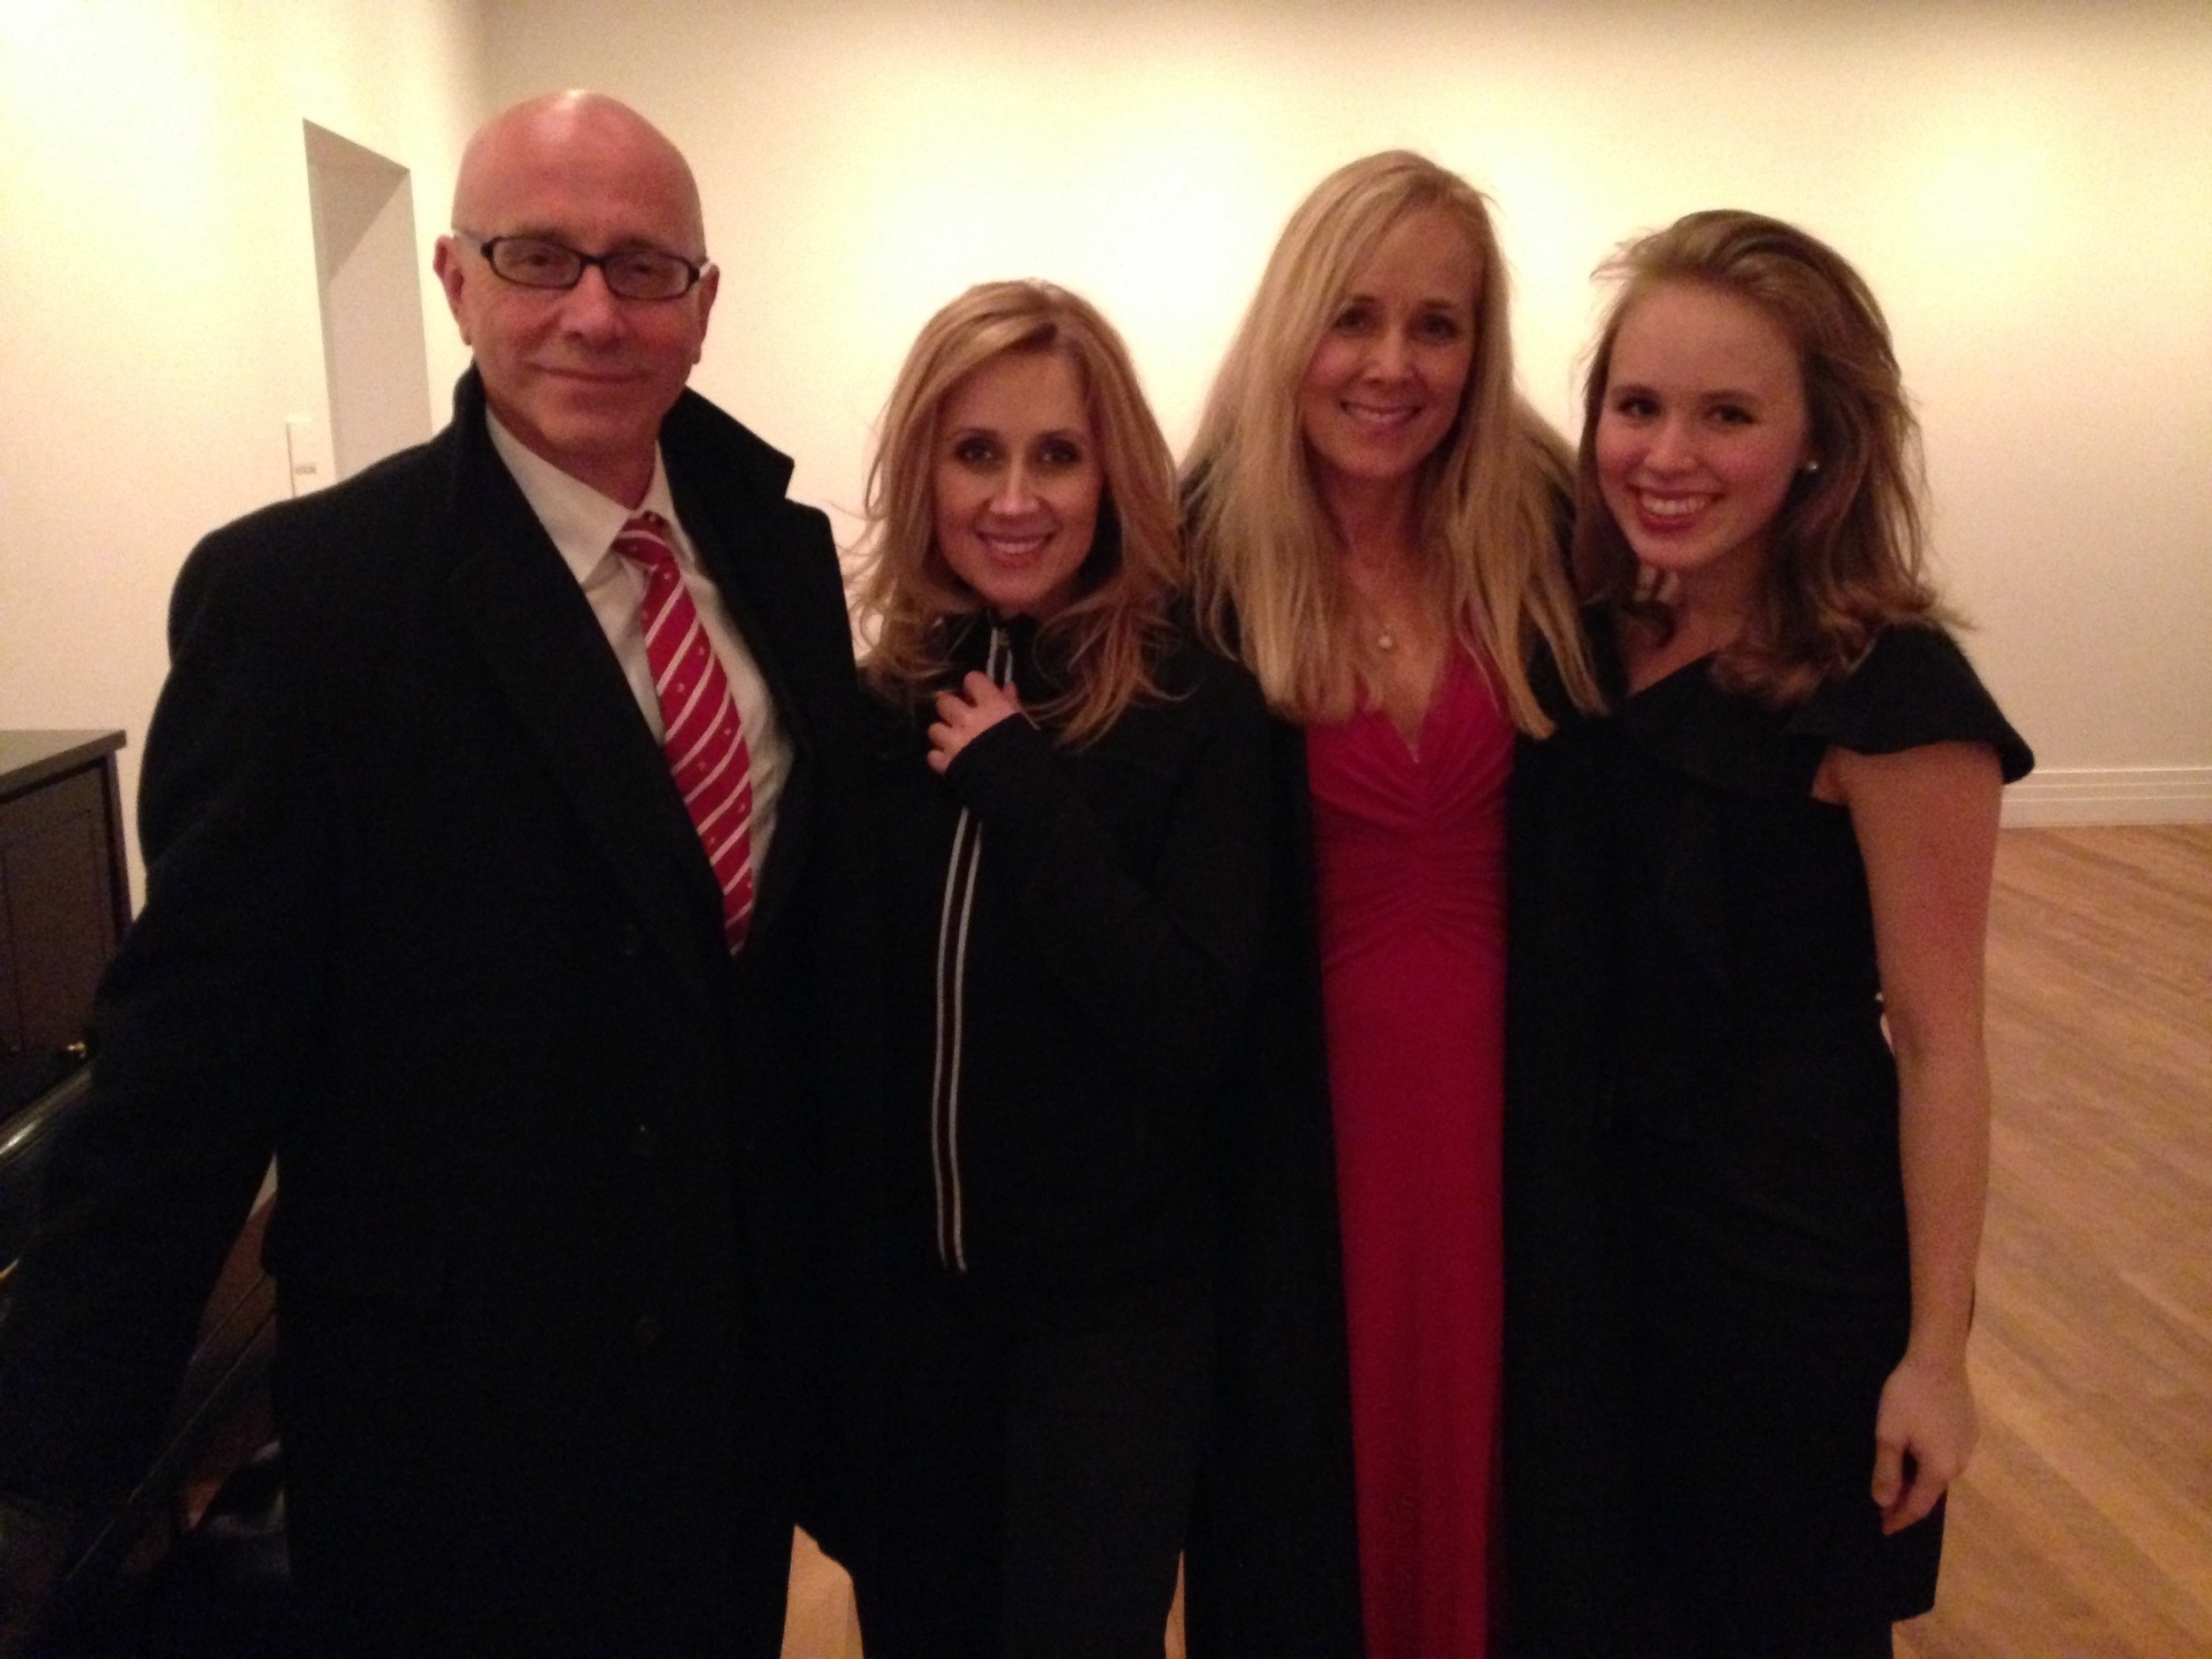 """Bruce, Lara Fabian, Janey, and daughter  Sam  after a sold out performance of """"Le Secret"""" at Carnegie Hall in NYC 2013"""